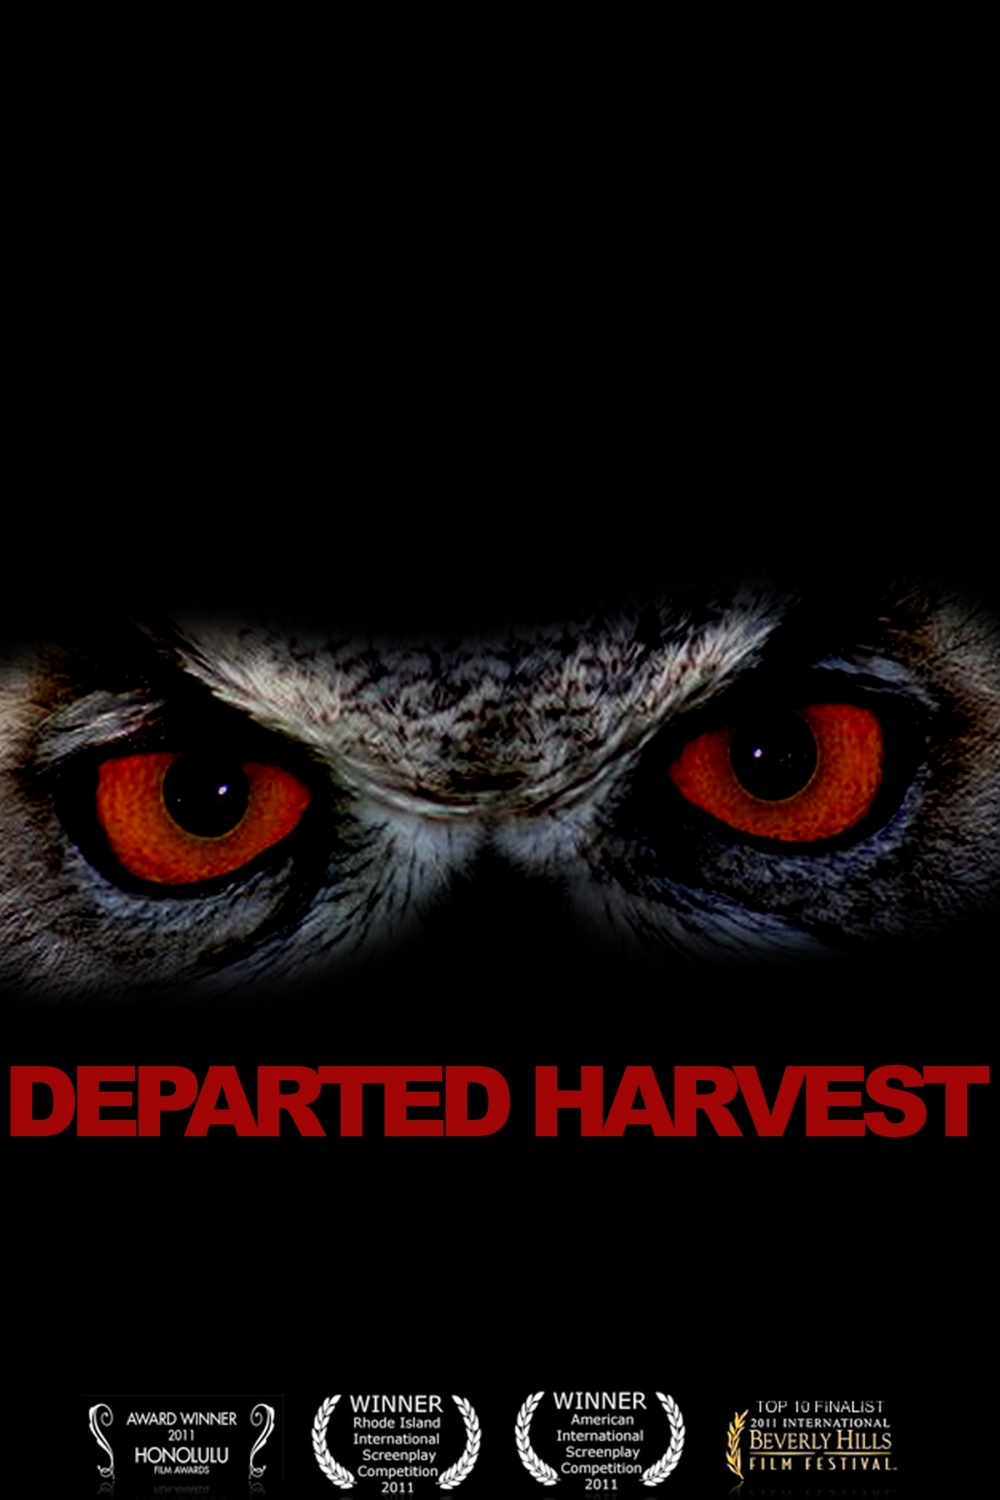 DEPARTED HARVEST POSTER31